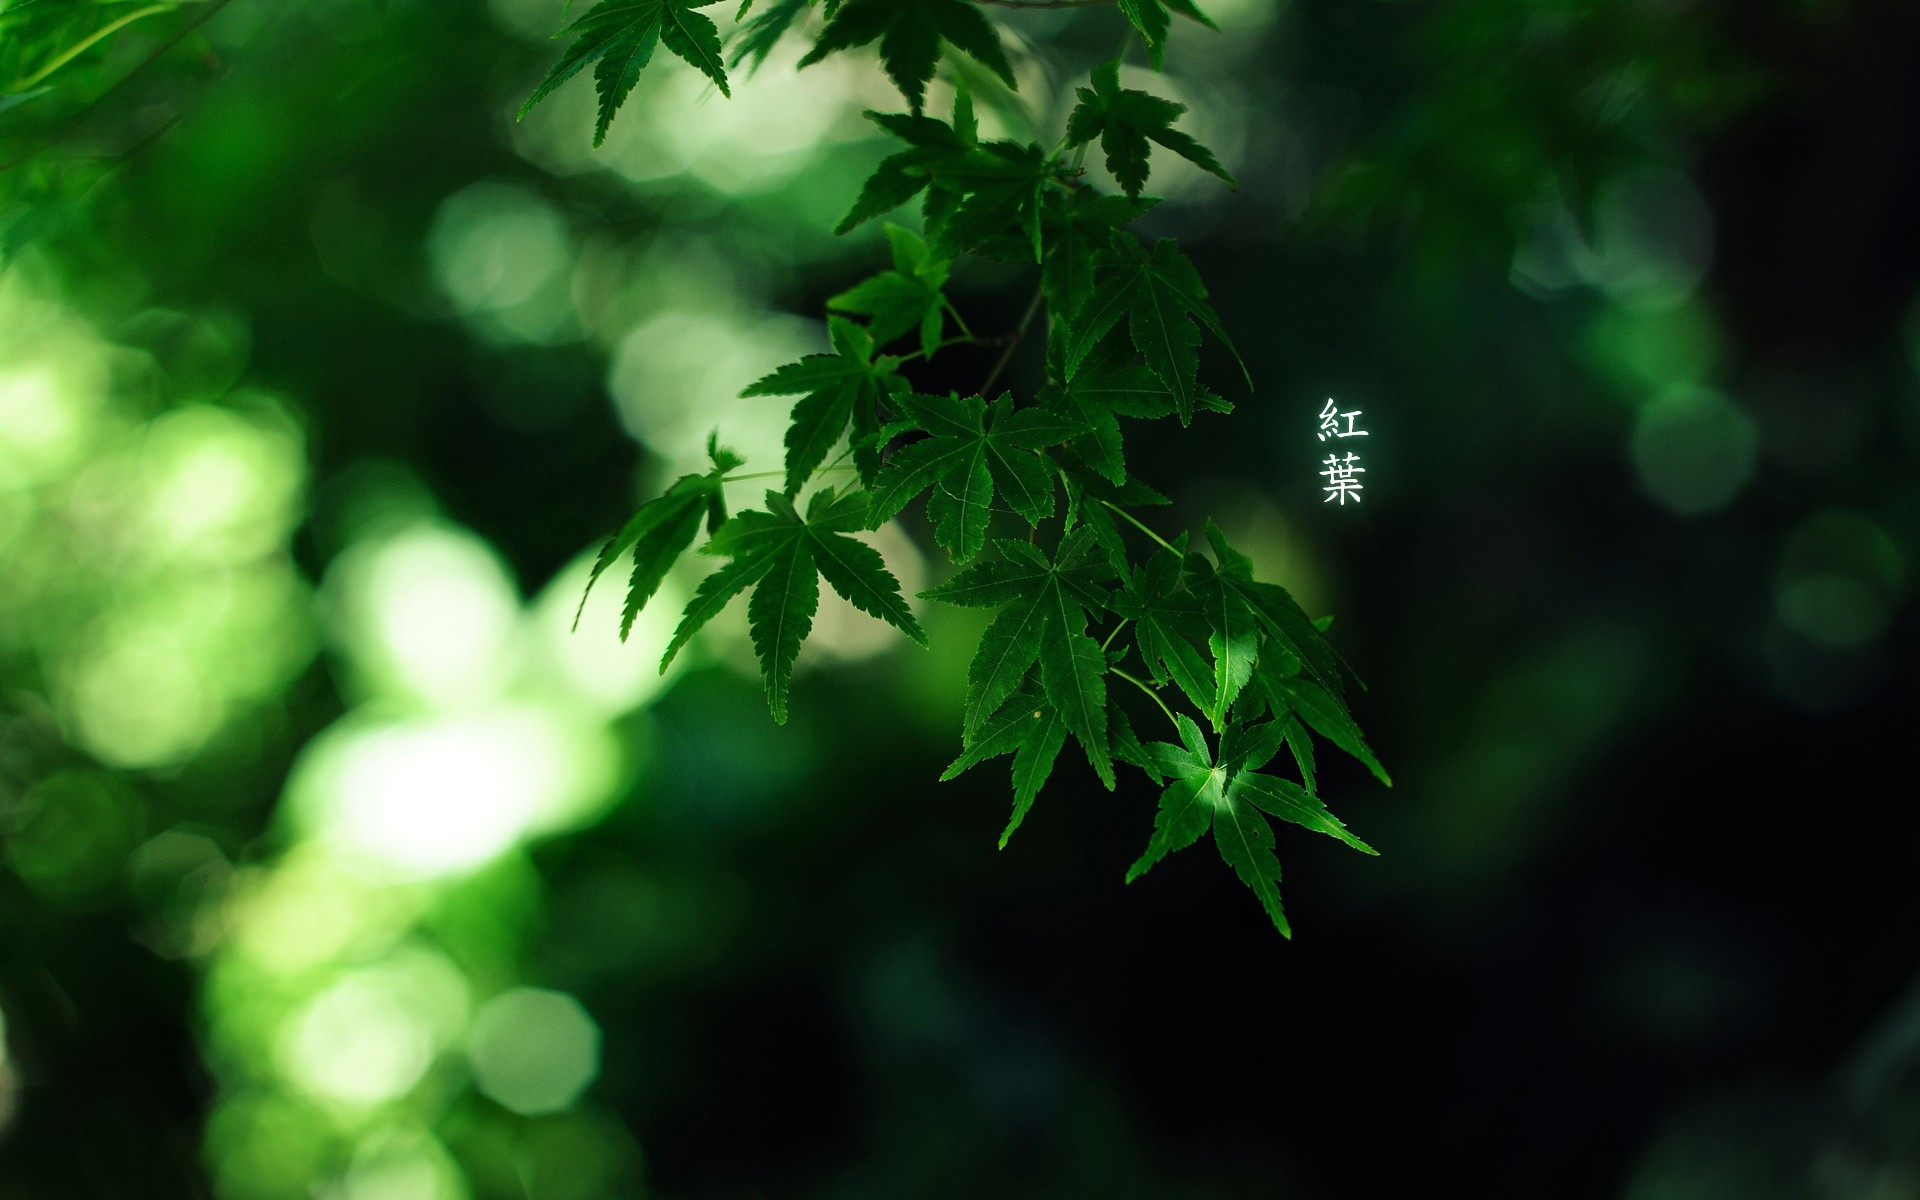 Bamboo Depth Of Field Forests Green Japan Japanese Leaves Momiji Nature  Trees